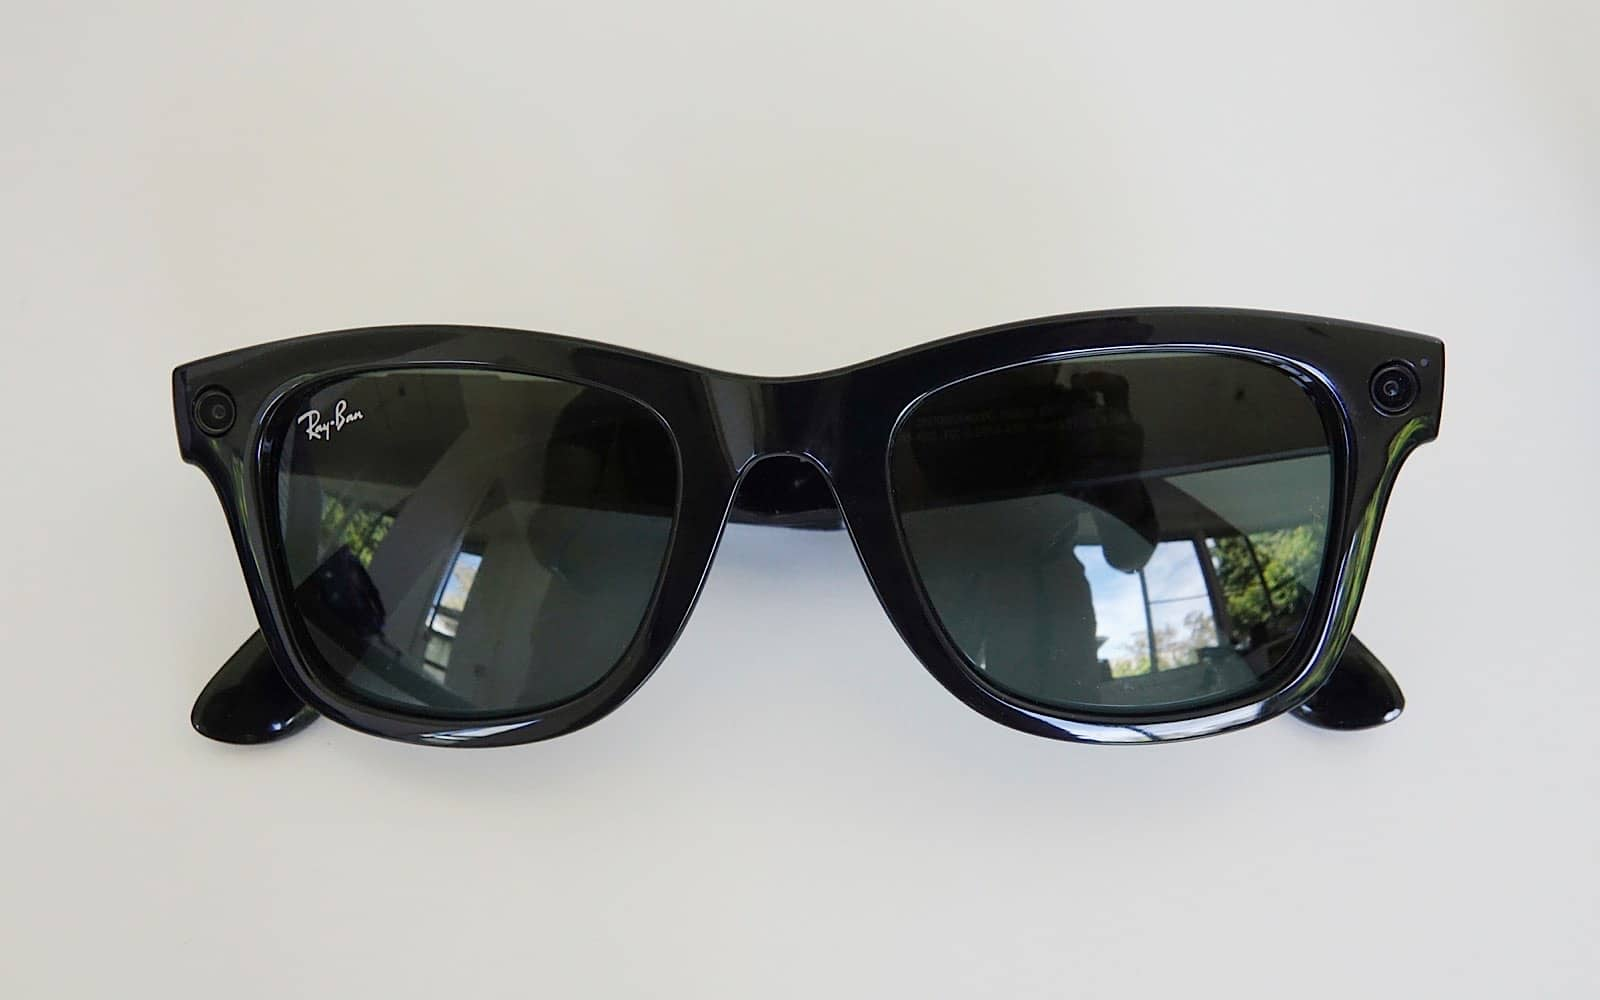 The Ray-Ban Stories collapsed.